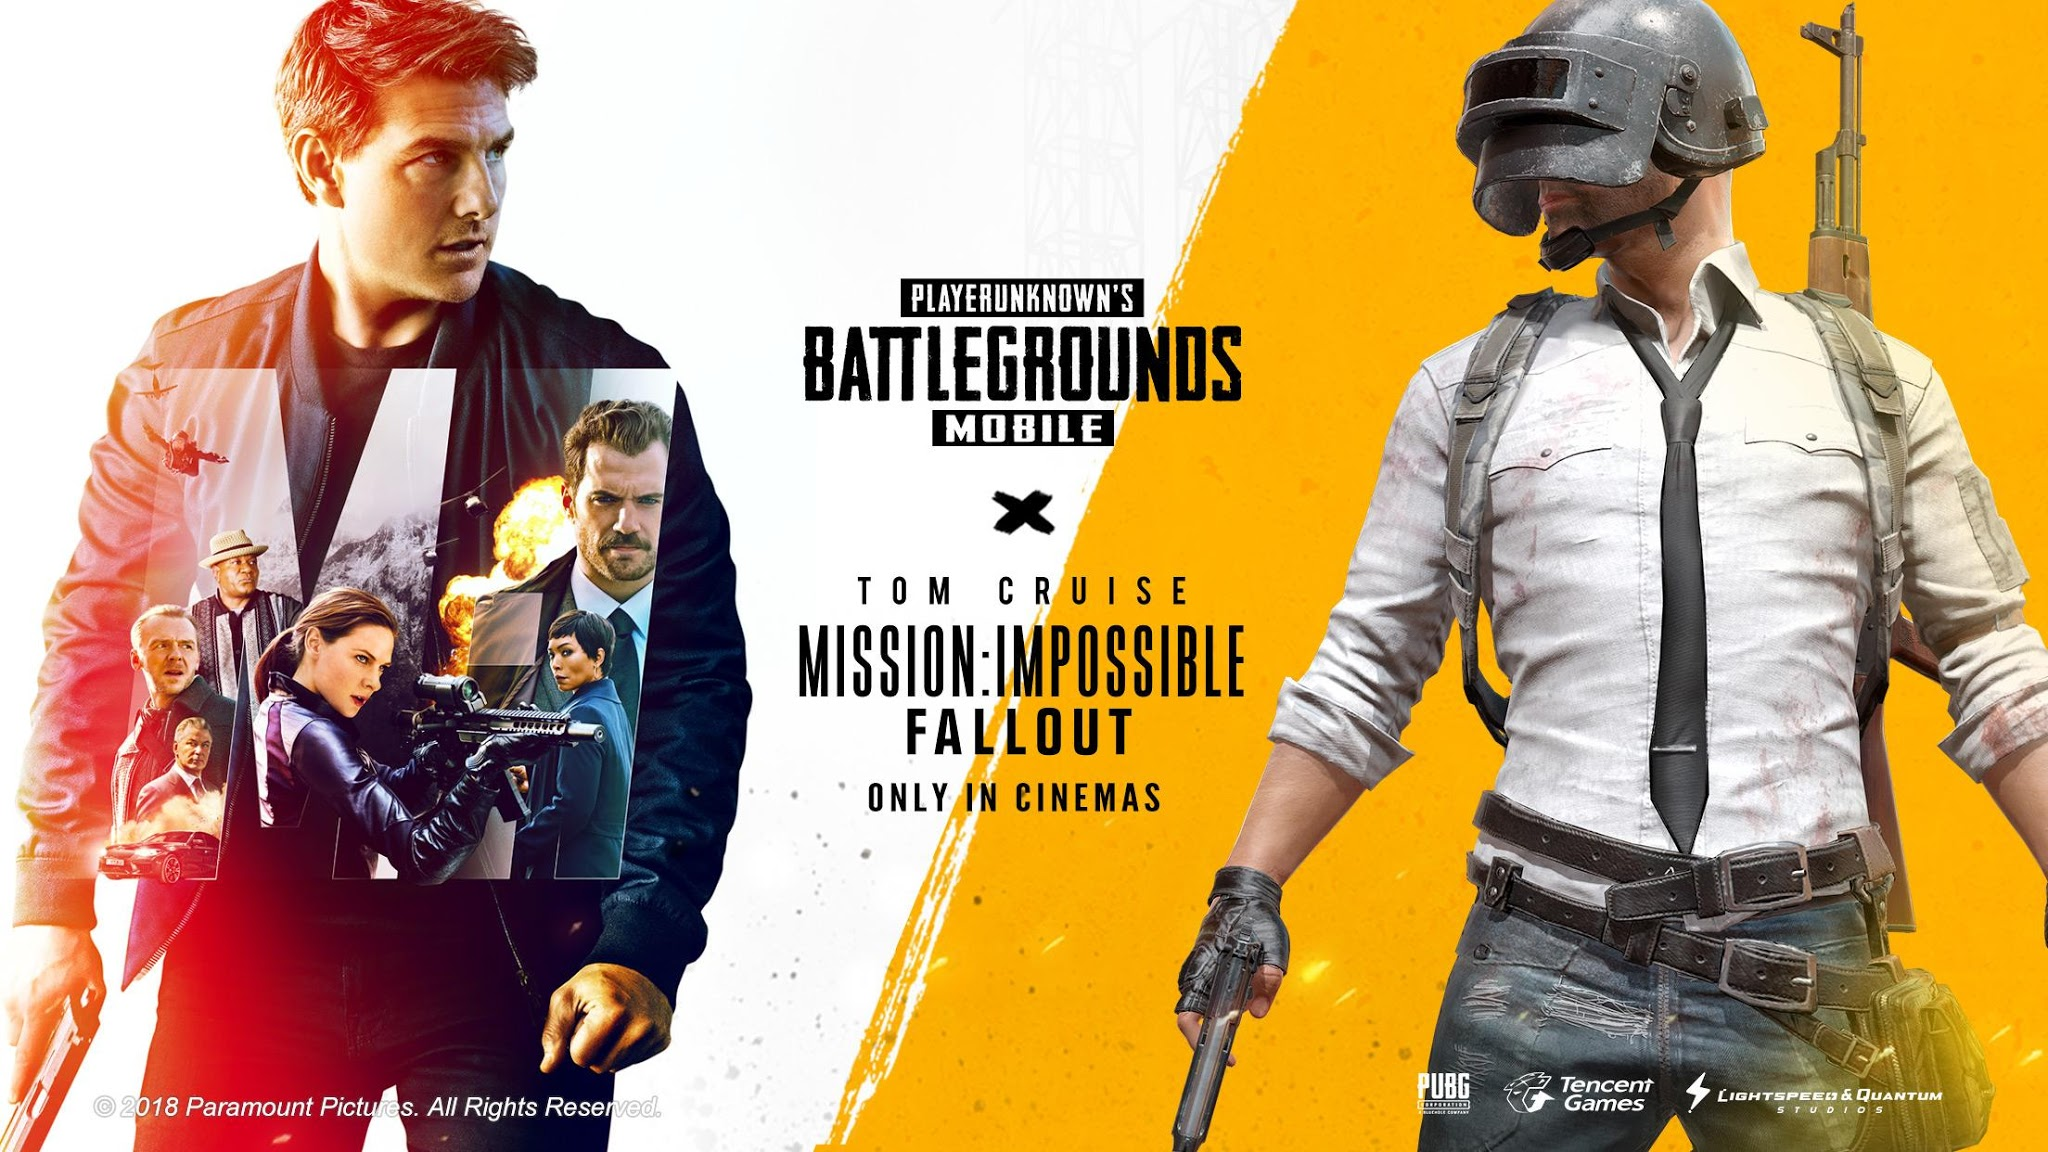 Download Pubg Mobile For Iphone Ipad Android Released: Fallout' Comes To 'PUBG Mobile' In